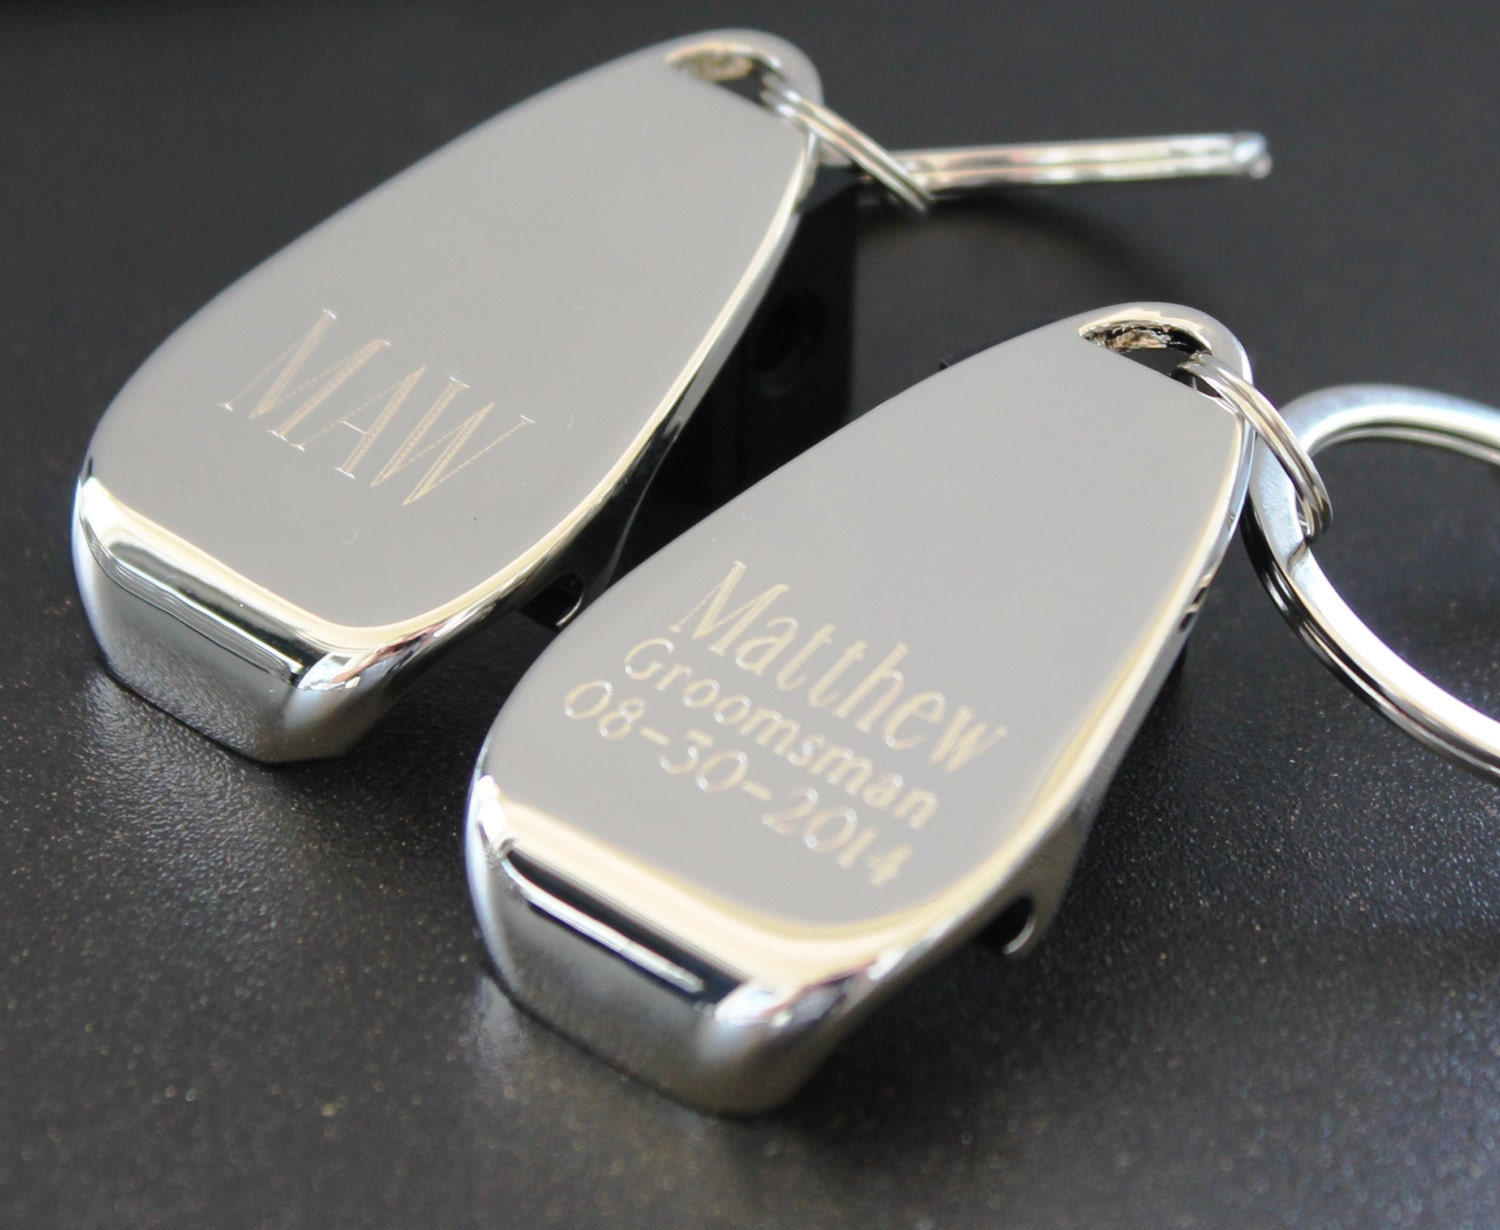 personalized bottle opener key chain groomsmen gifts. Black Bedroom Furniture Sets. Home Design Ideas